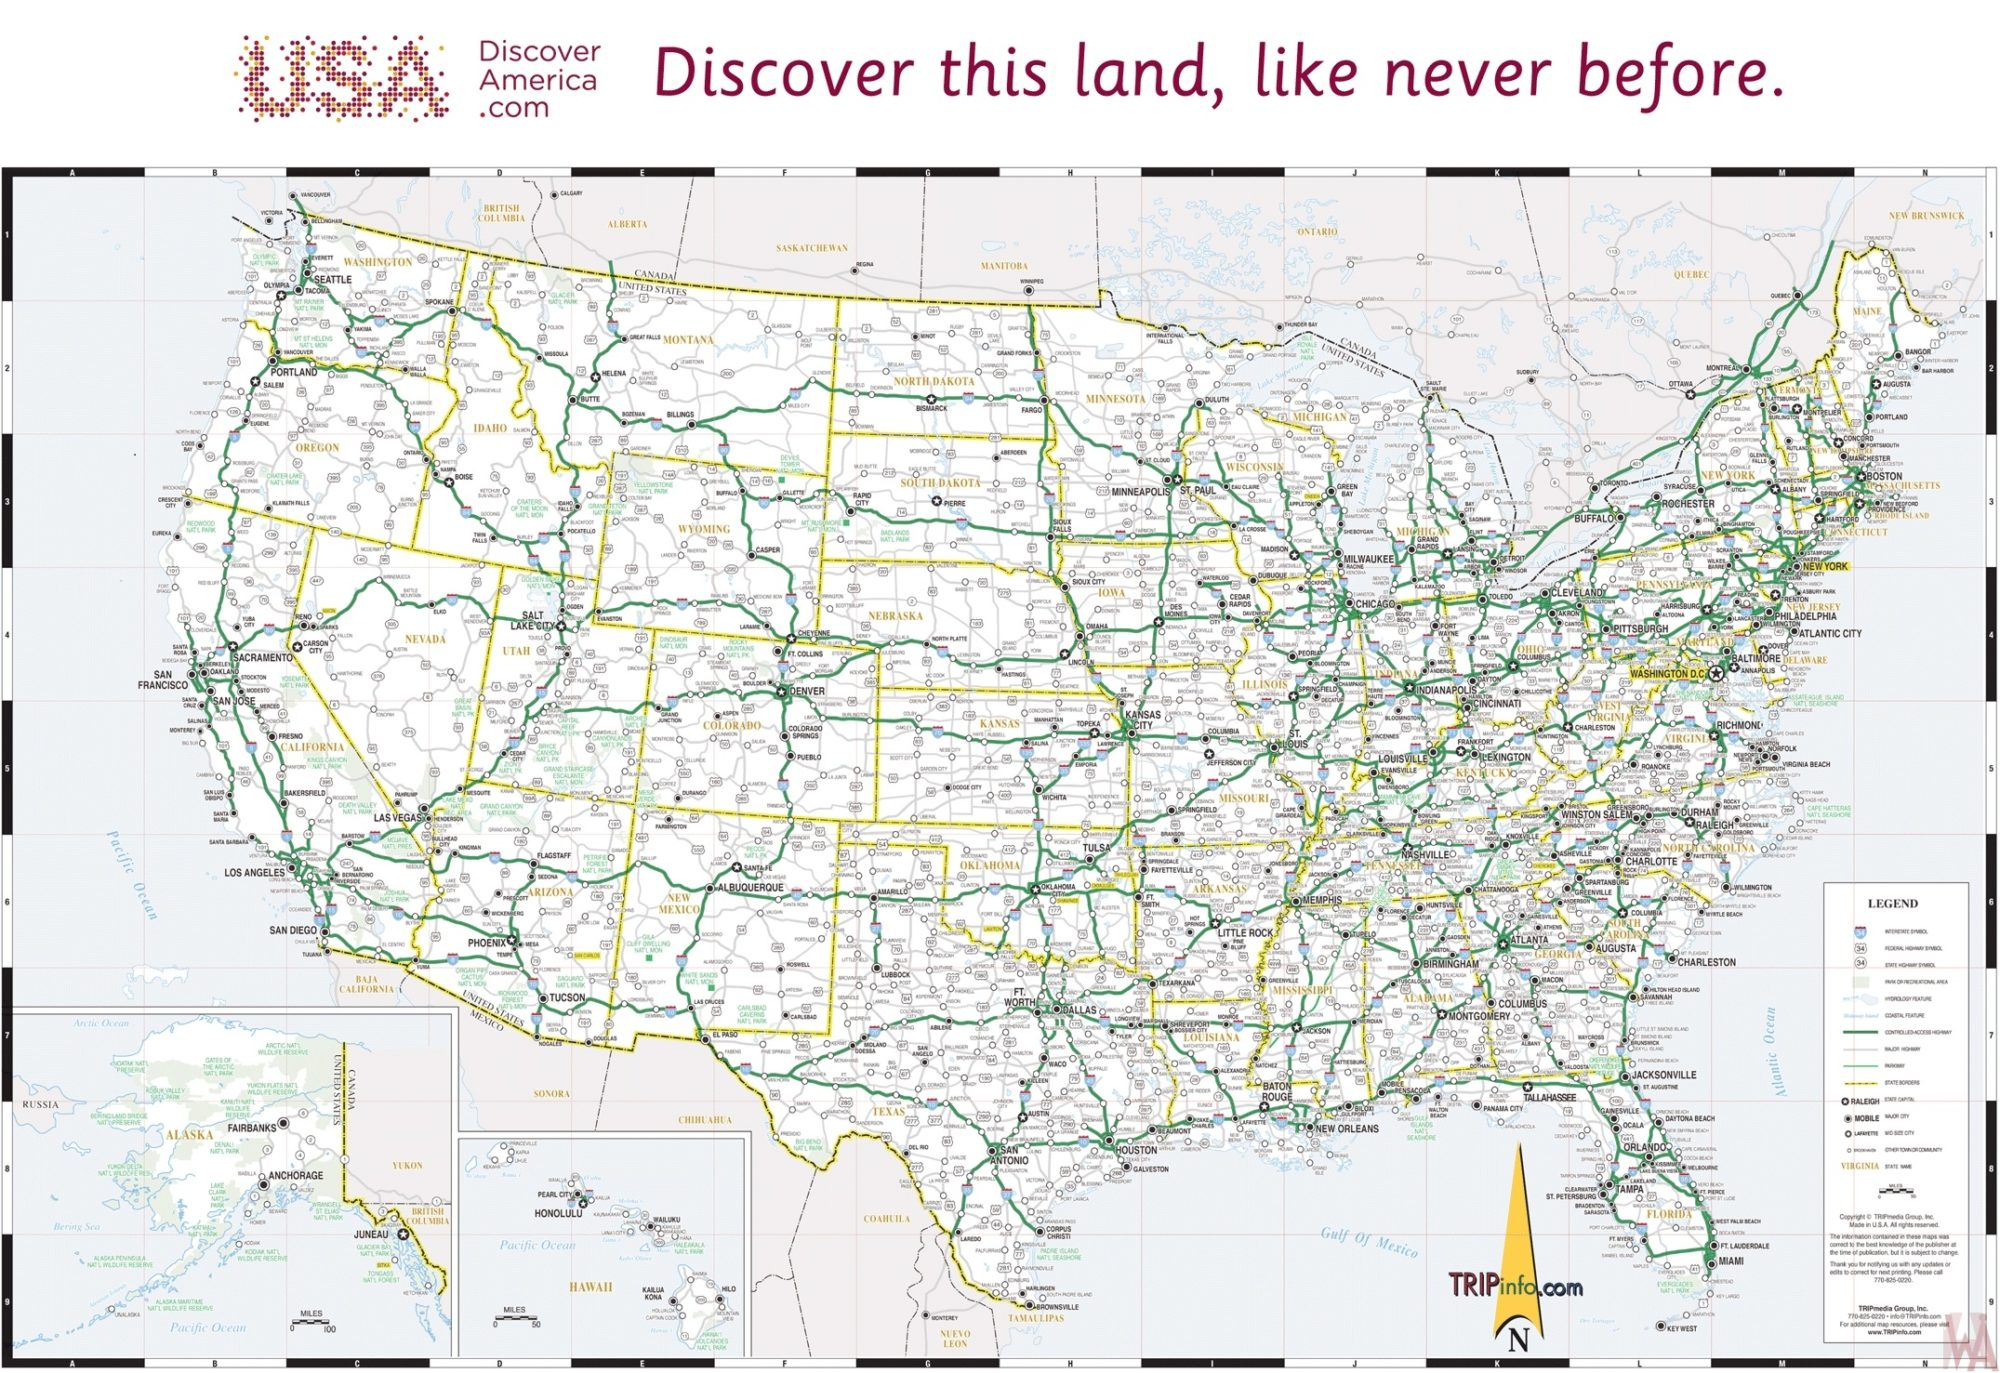 USA all in one travel map